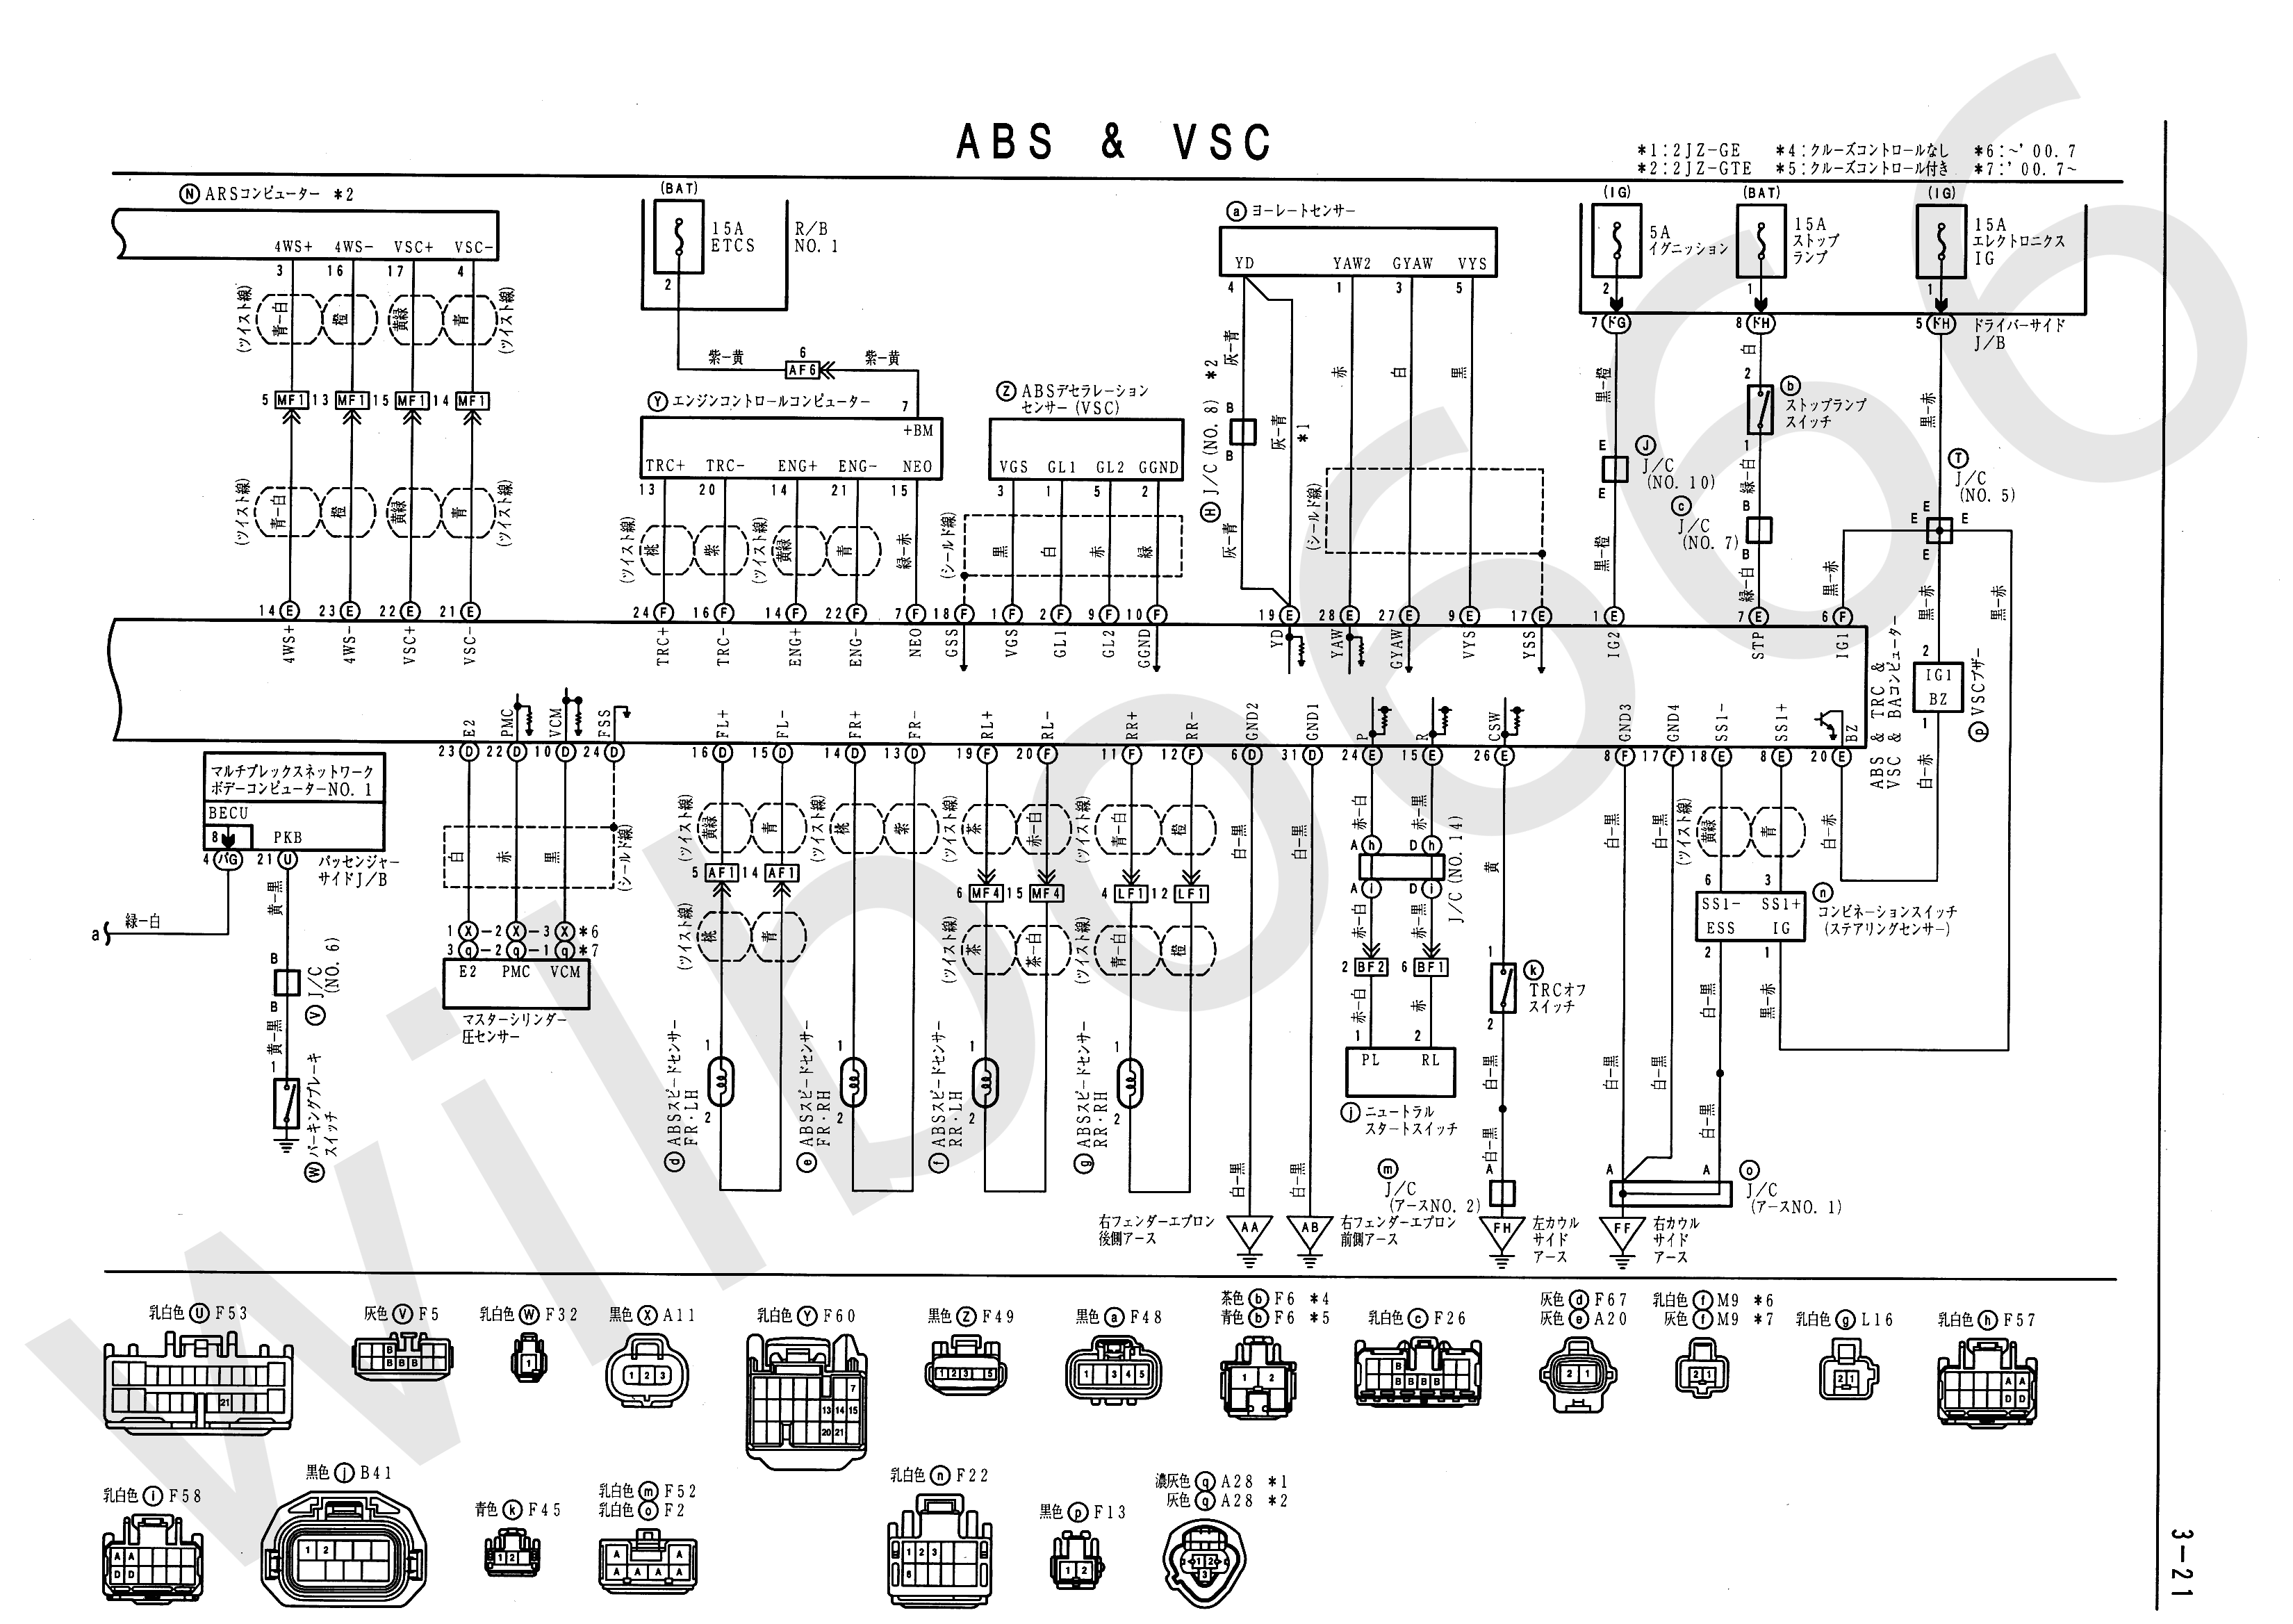 JZS161 Electrical Wiring Diagram 6748505 3 21 wilbo666 2jz gte vvti jzs161 aristo engine wiring  at eliteediting.co